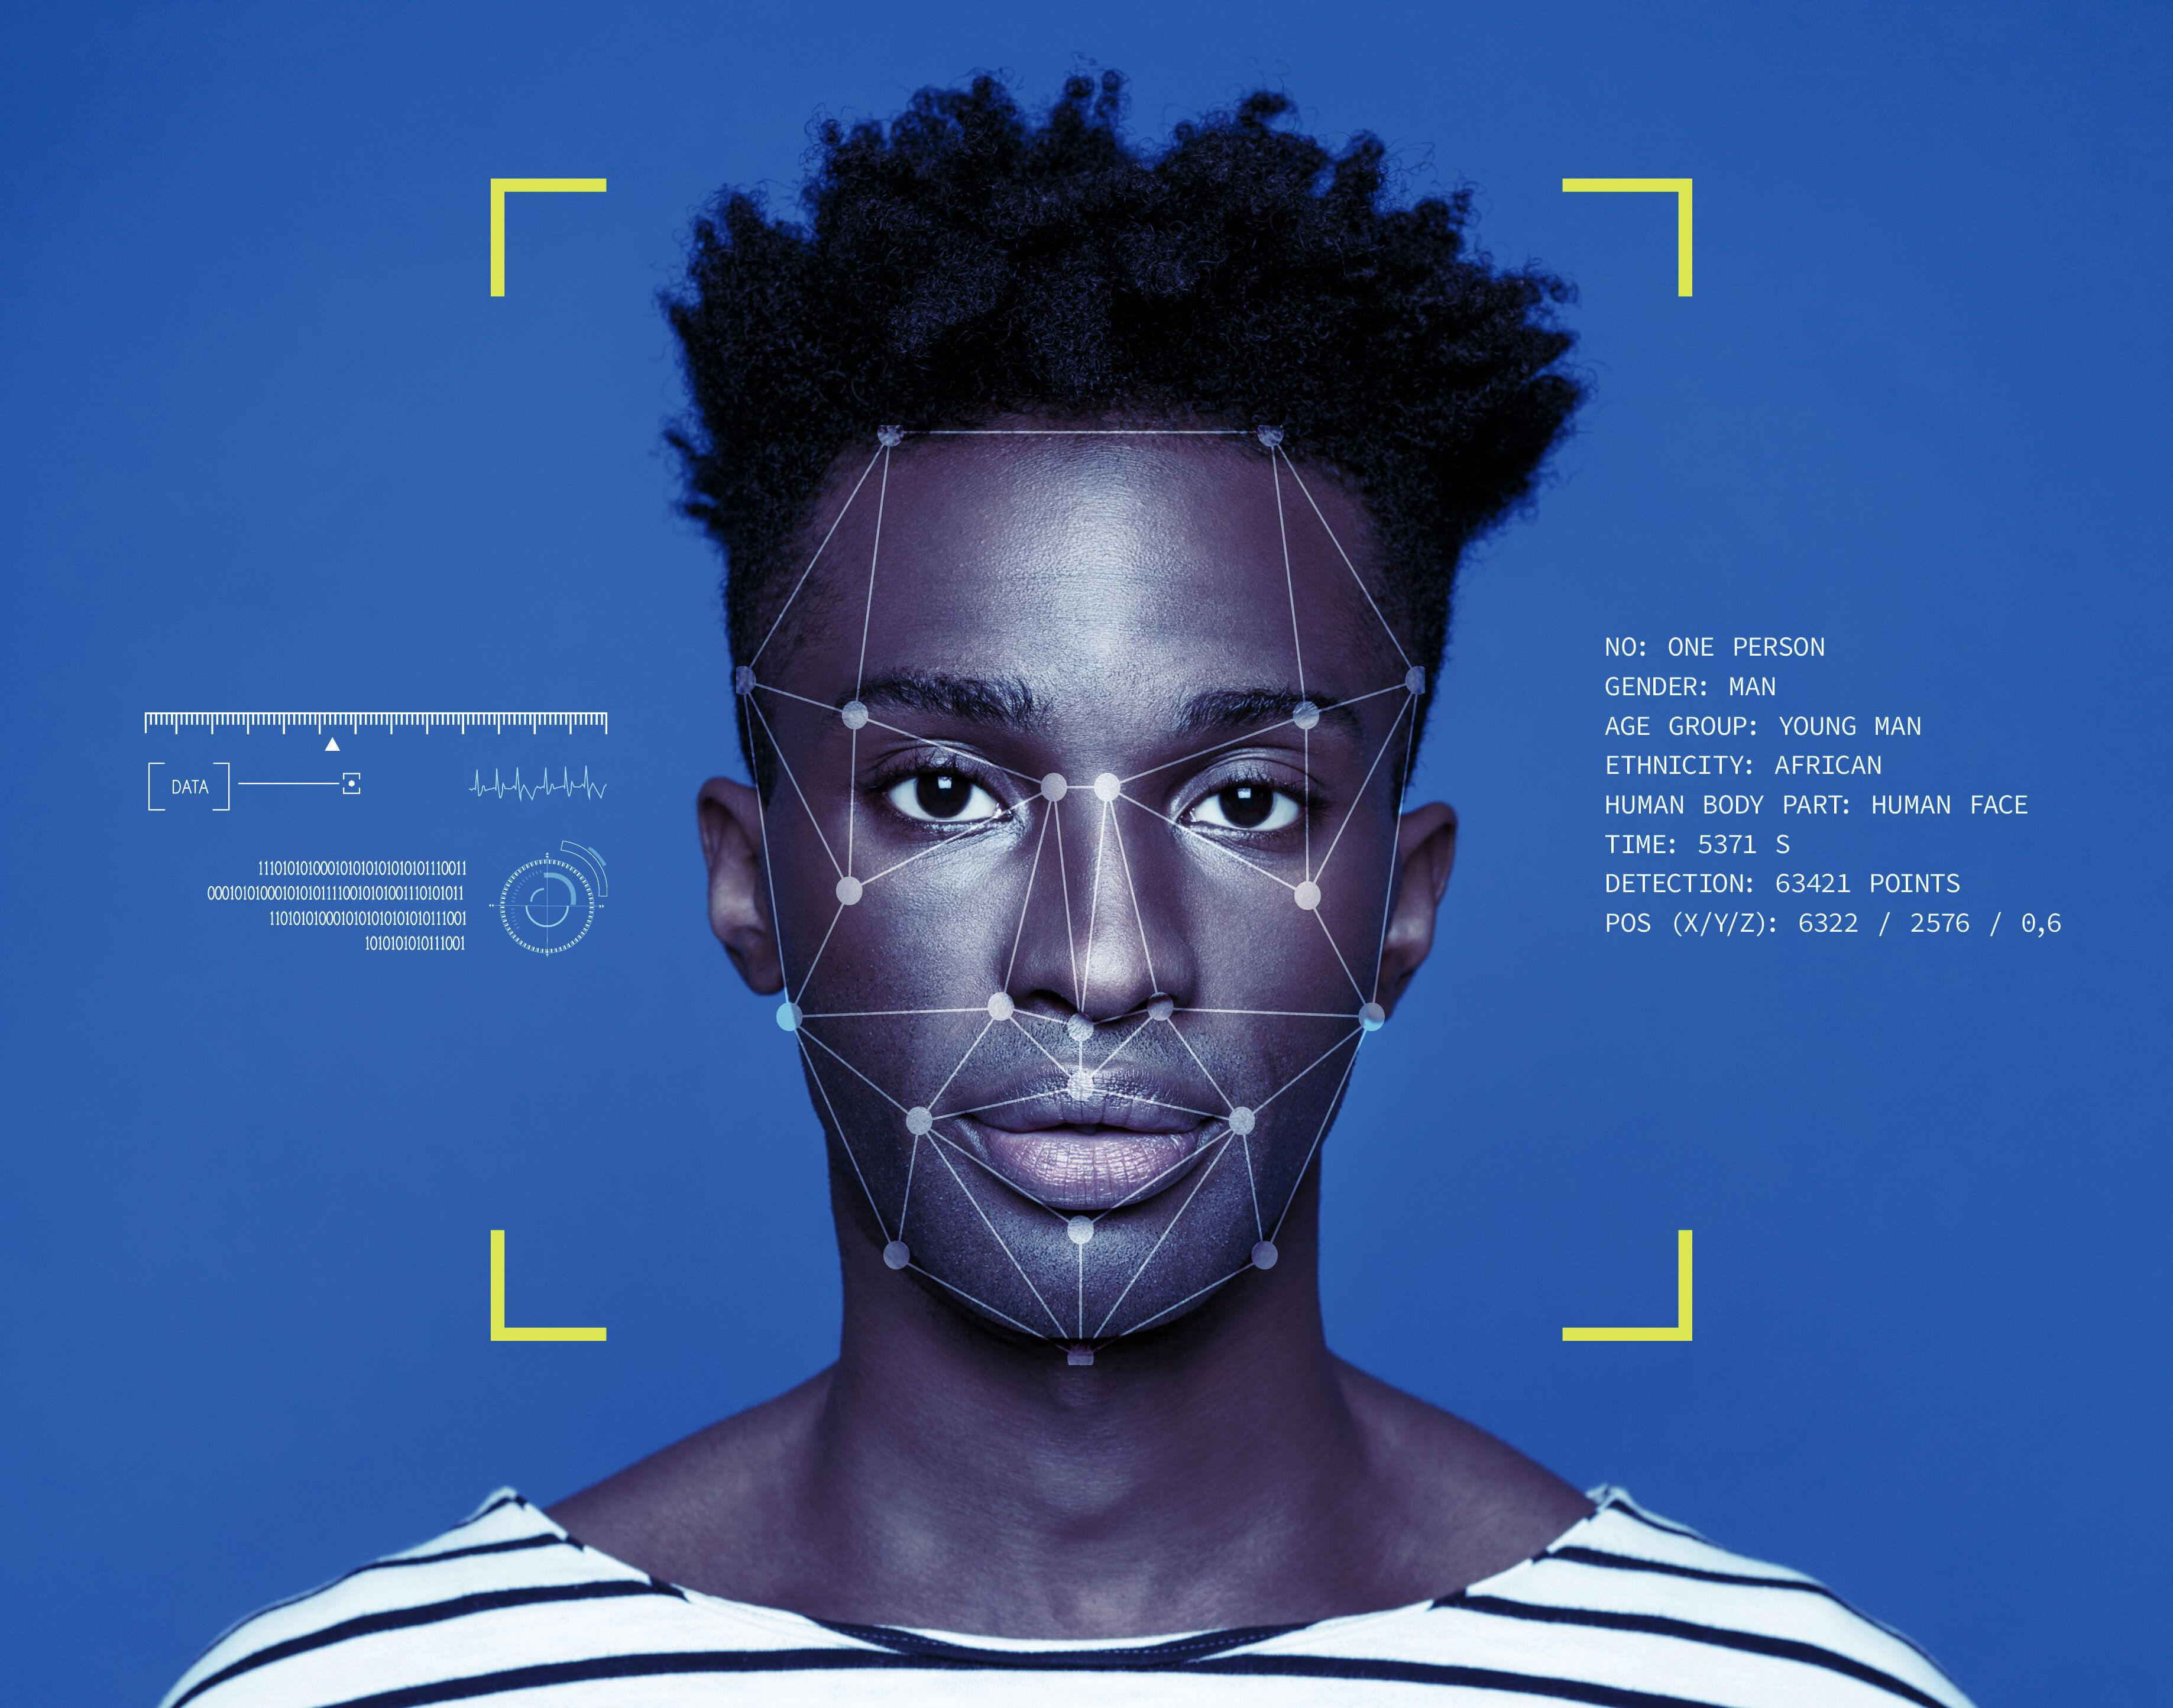 San Francisco Moves Closer To Banning Use Of Facial Recognition